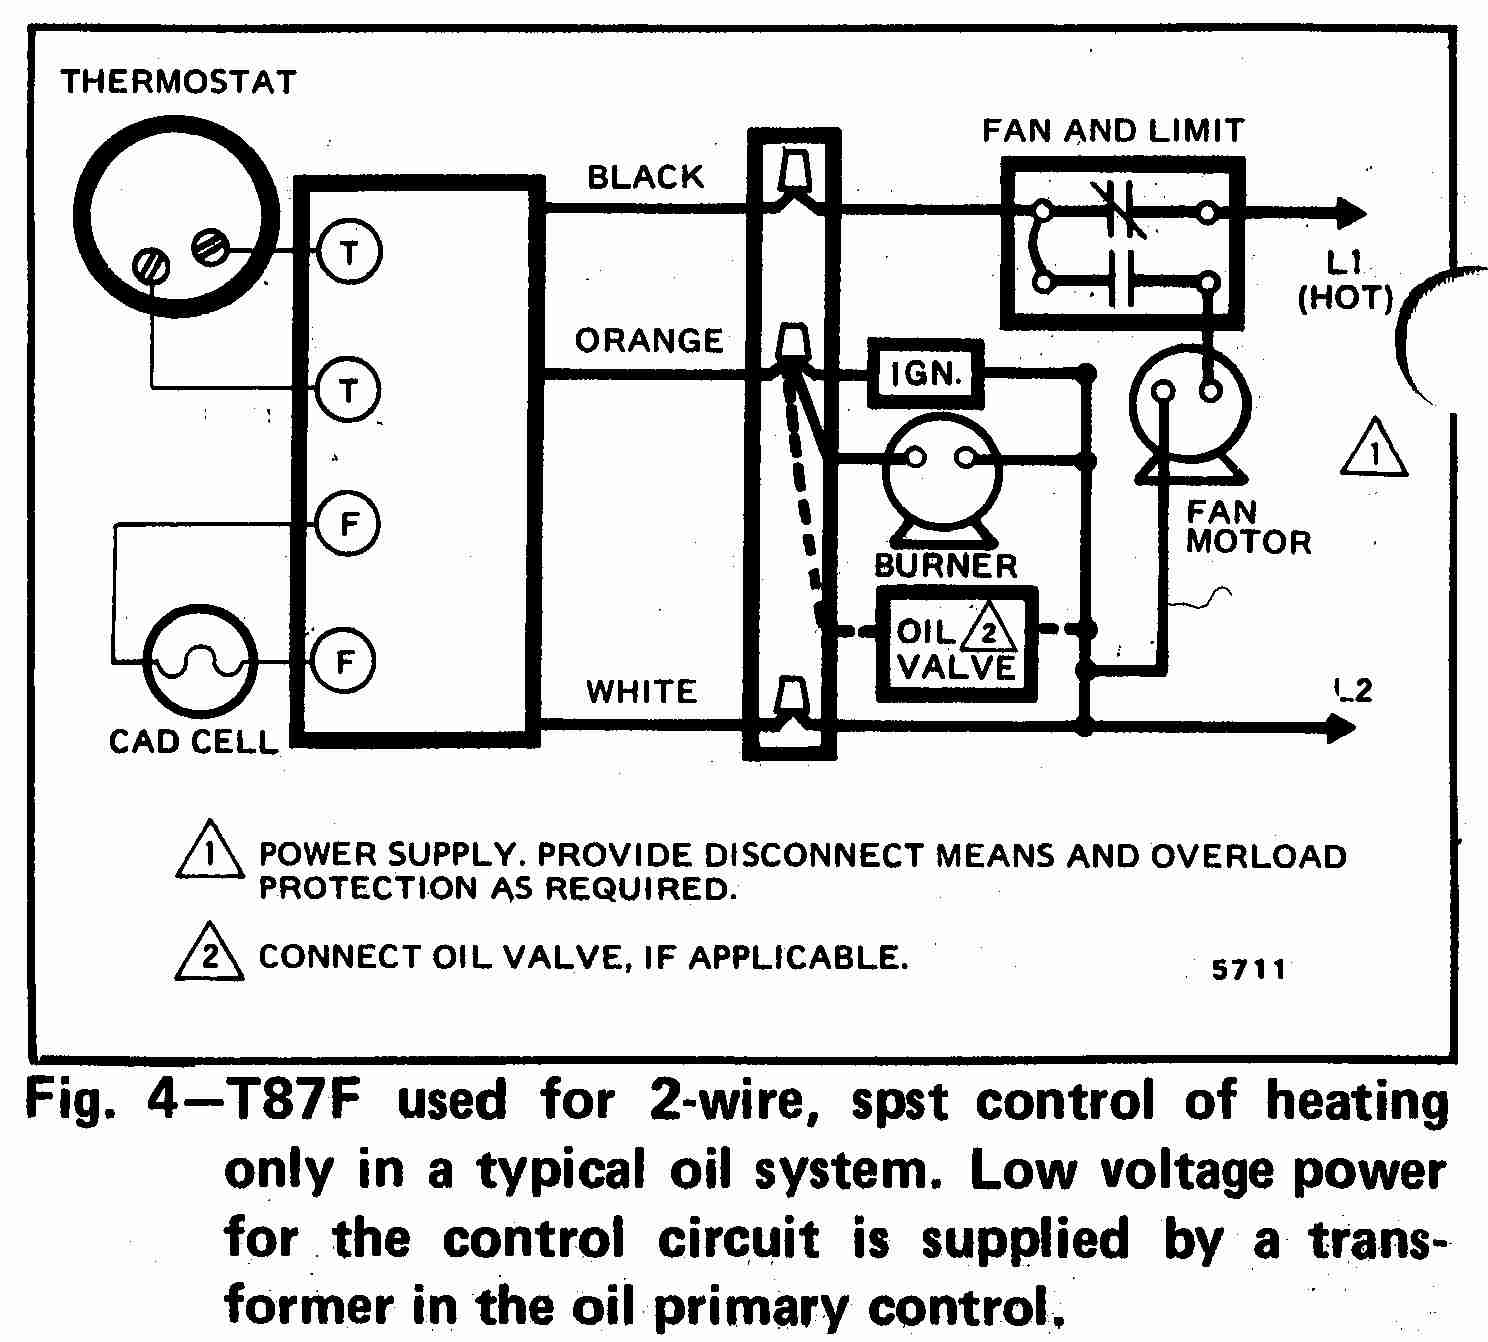 TT_T87F_0002_2W_DJF room thermostat wiring diagrams for hvac systems heil furnace thermostat wiring diagram at virtualis.co